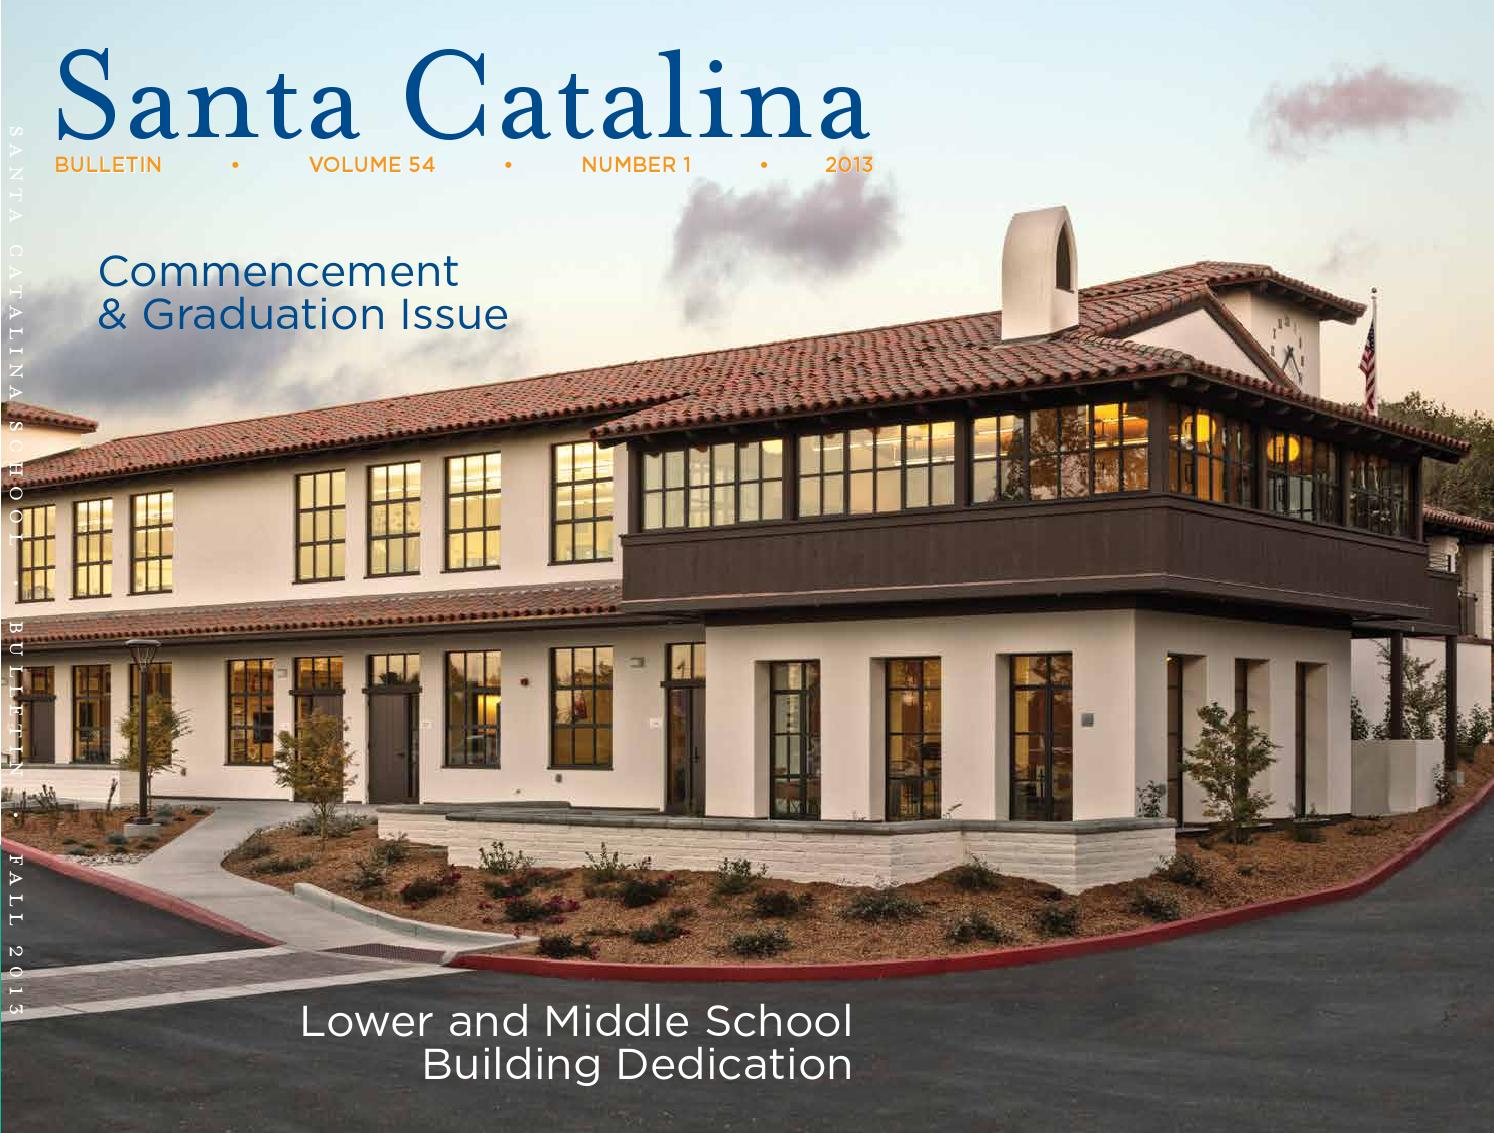 Santa Catalina School Fall Bulletin 2013 by santacatalina